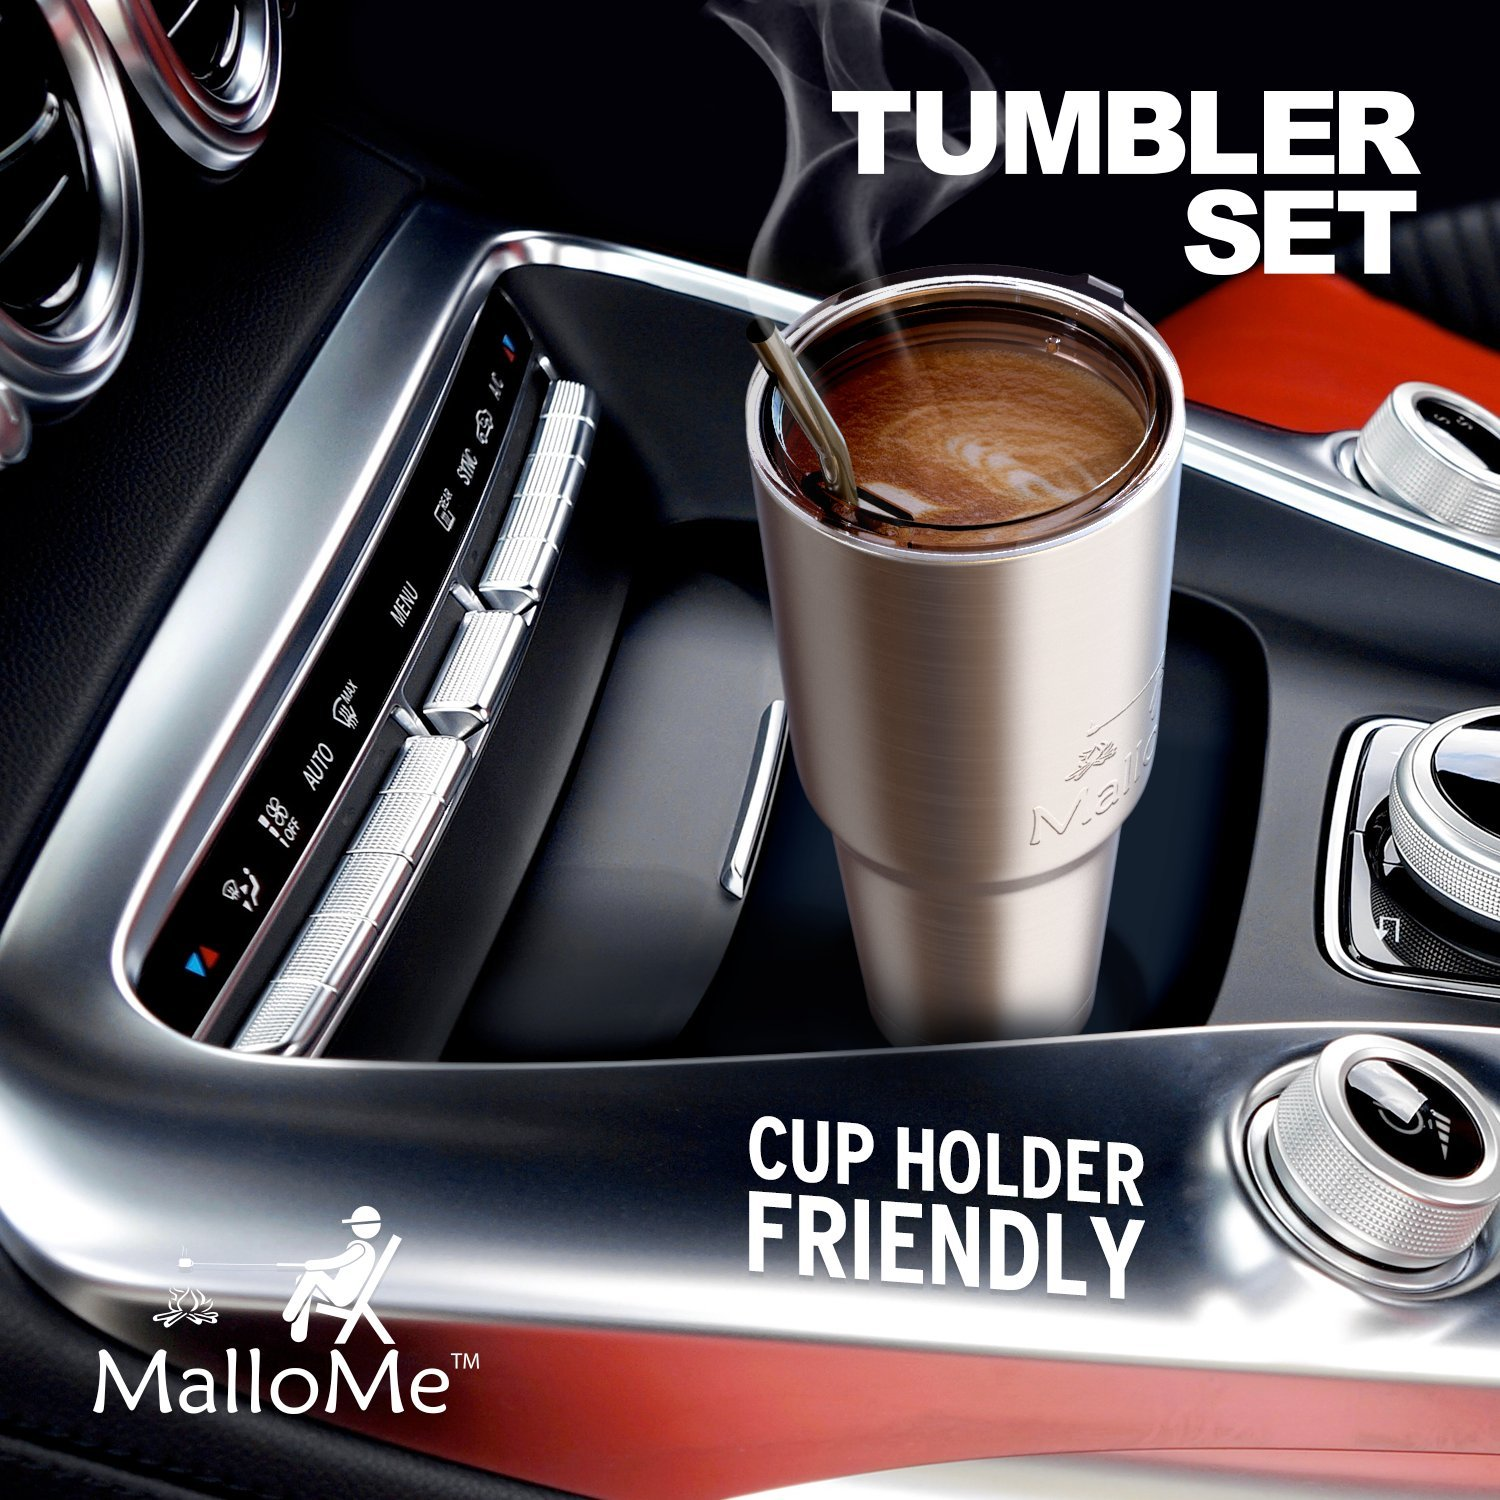 MalloMe Tumbler 30 oz. Double Wall Stainless Steel Vacuum Insulated - Travel Mug [Crystal Clear Lid] Water Coffee Cup [Straw Included] For Home,Office,School - Works Great for Ice Drink, Hot Beverage by MalloMe (Image #5)